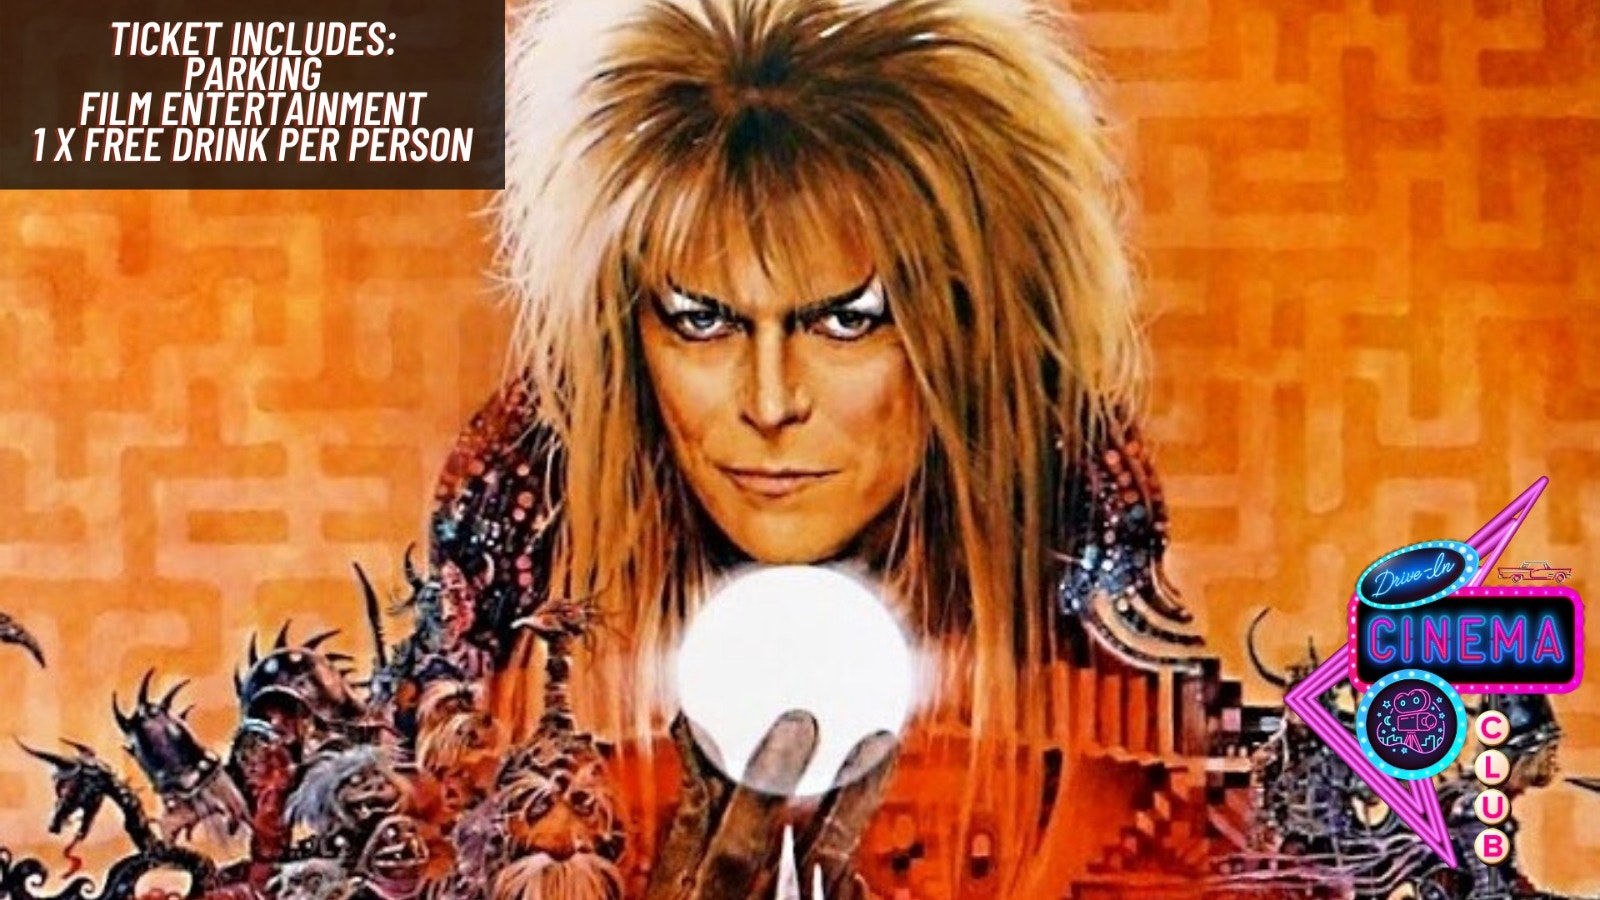 Labyrinth (Limited £15 Tickets)  –  Sunday 9th August 12:30